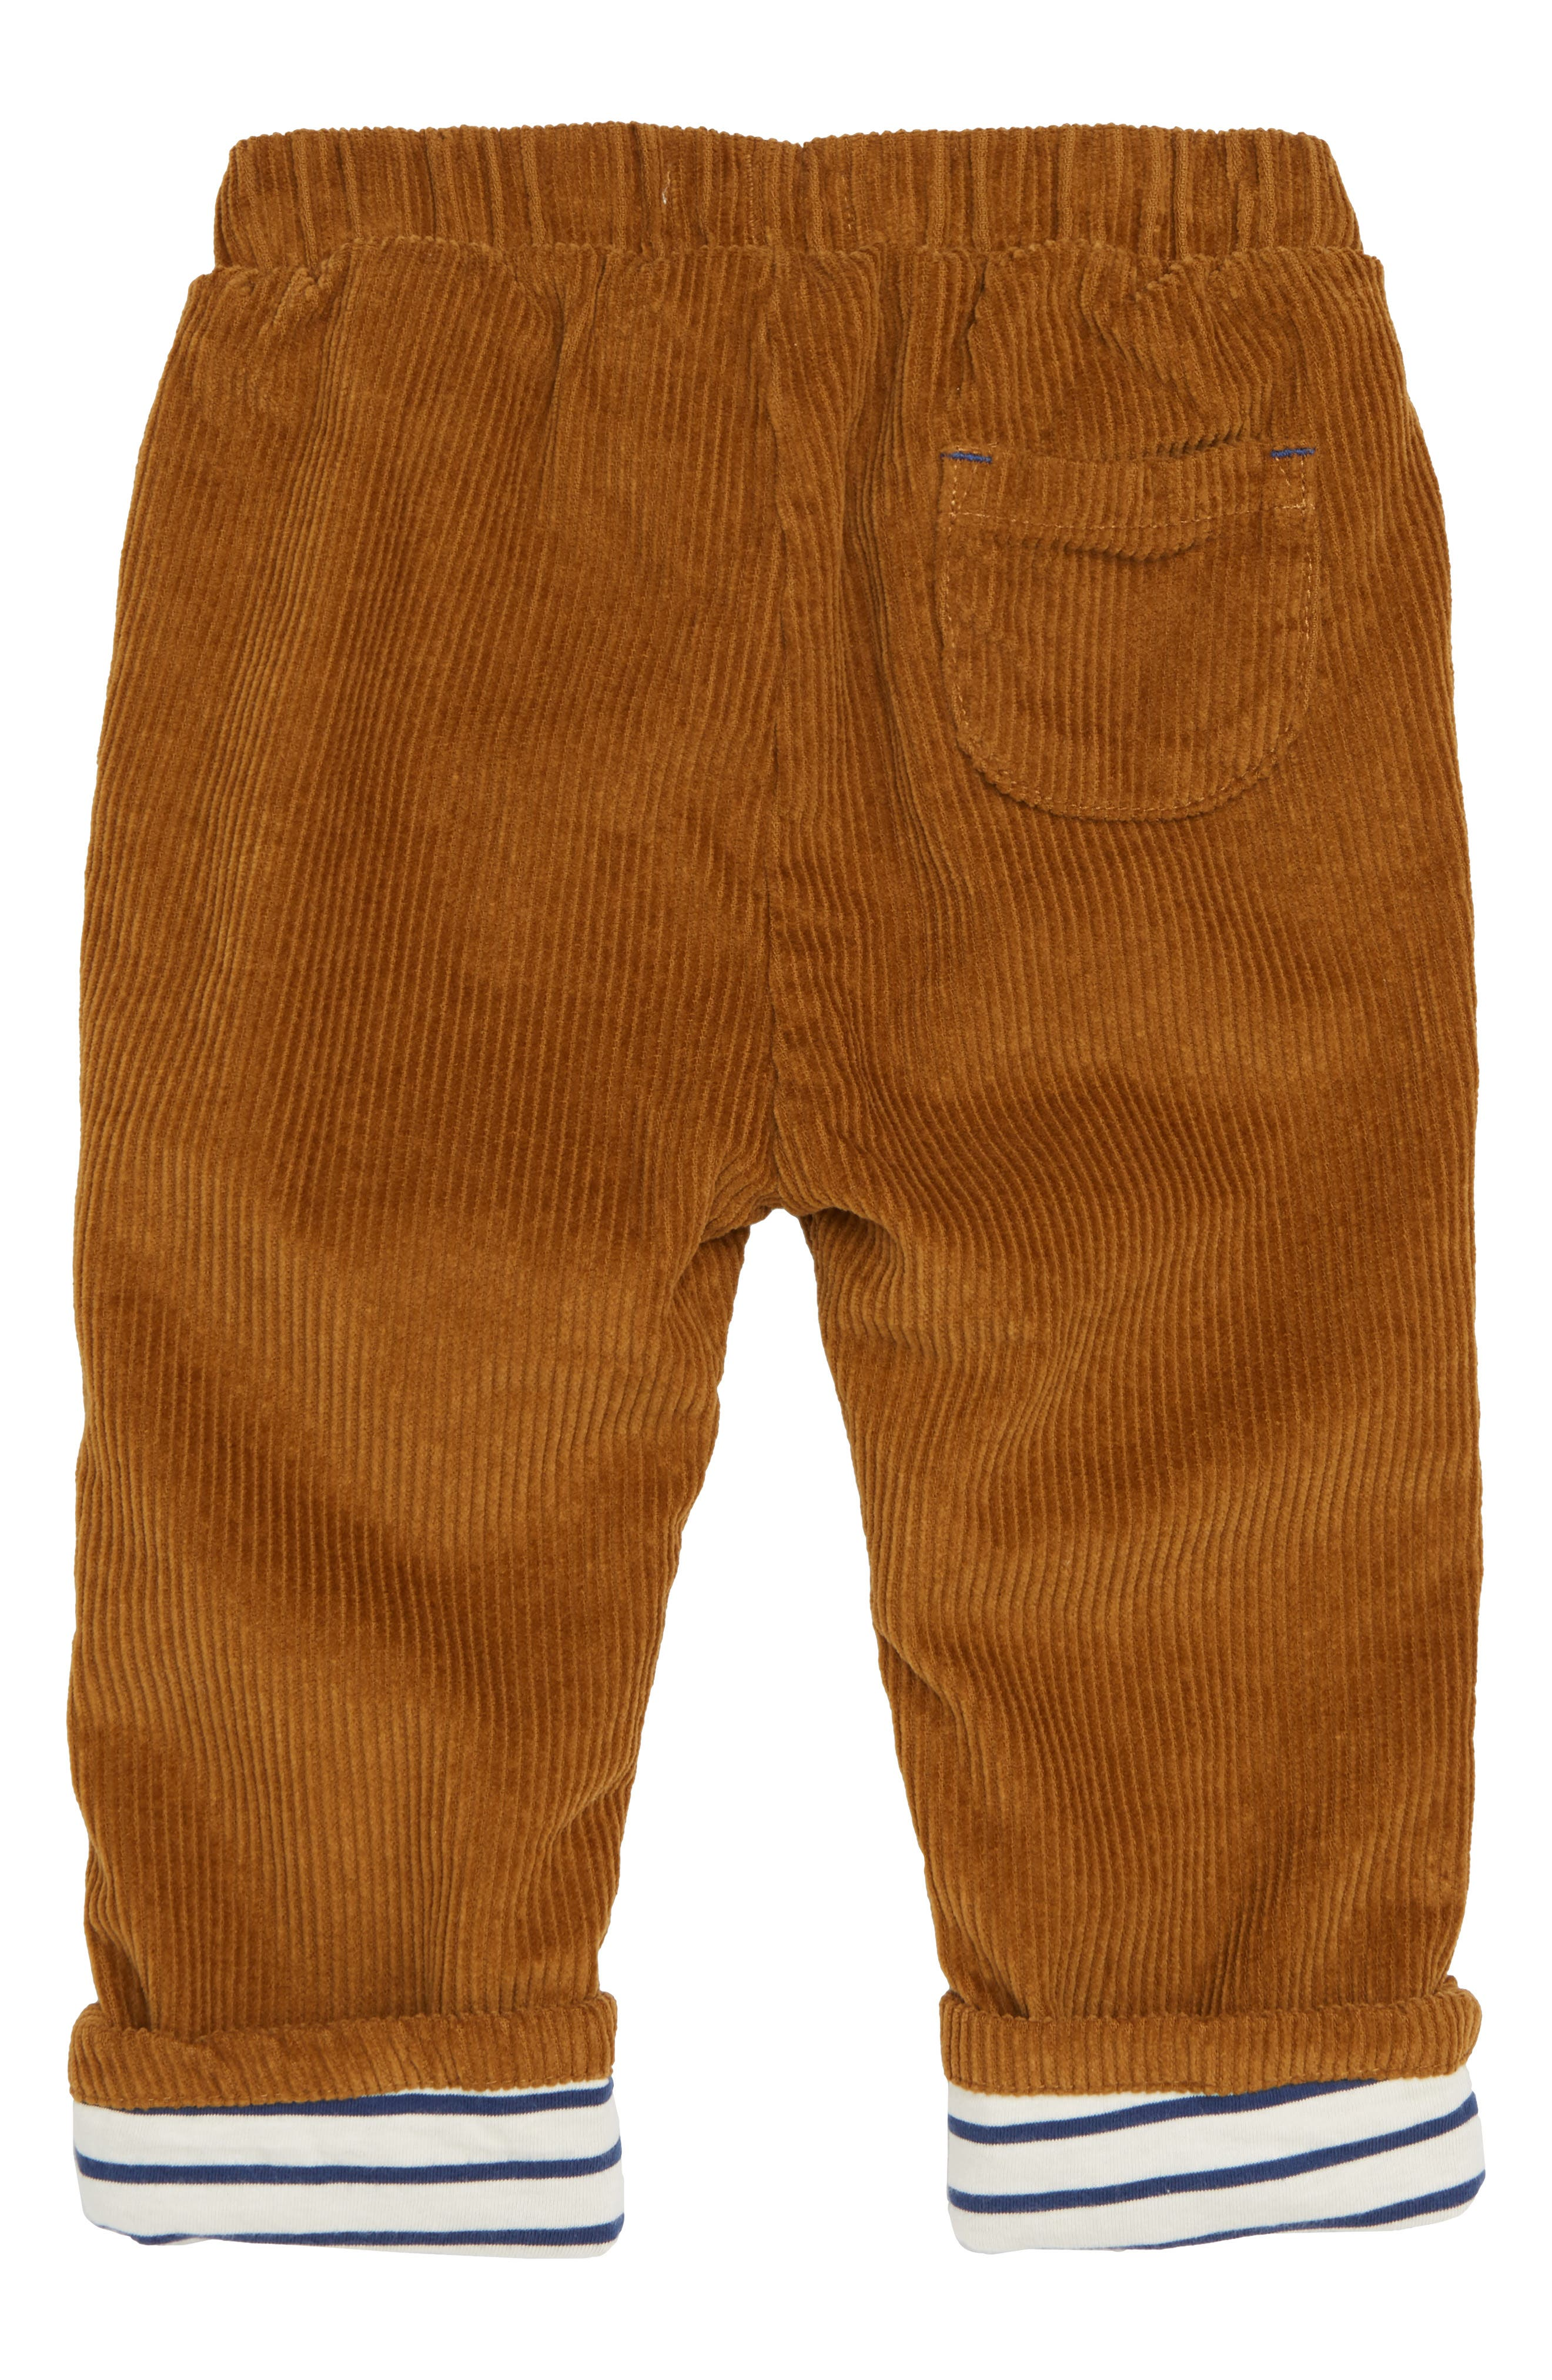 Lined Corduroy Trousers,                             Alternate thumbnail 2, color,                             TEDDY BEAR BROWN